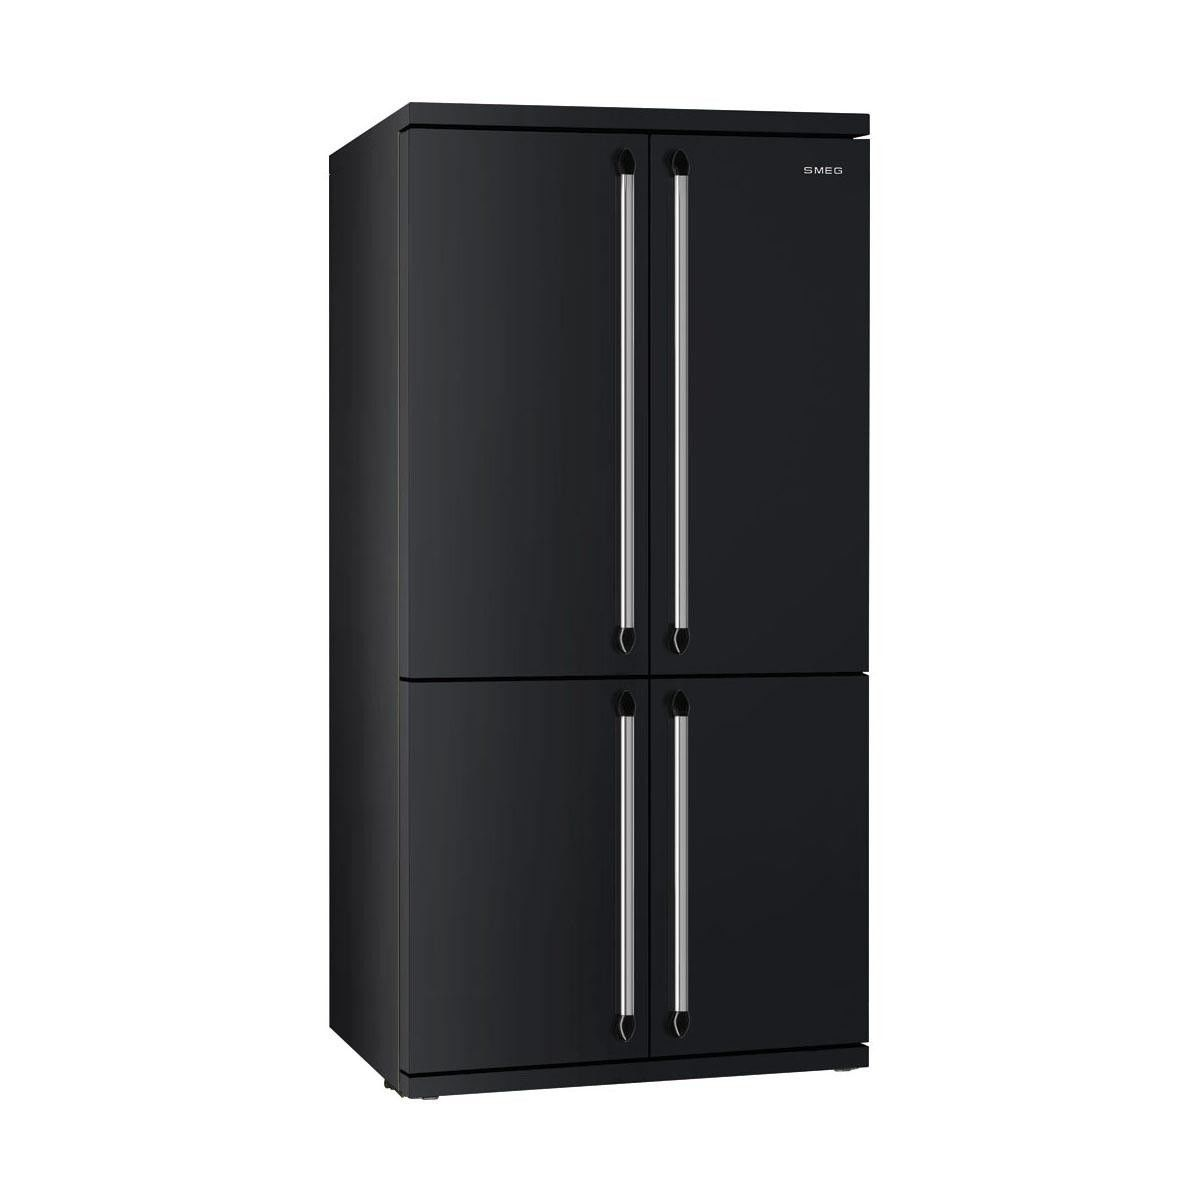 fq960n side by side refrigerator smeg. Black Bedroom Furniture Sets. Home Design Ideas